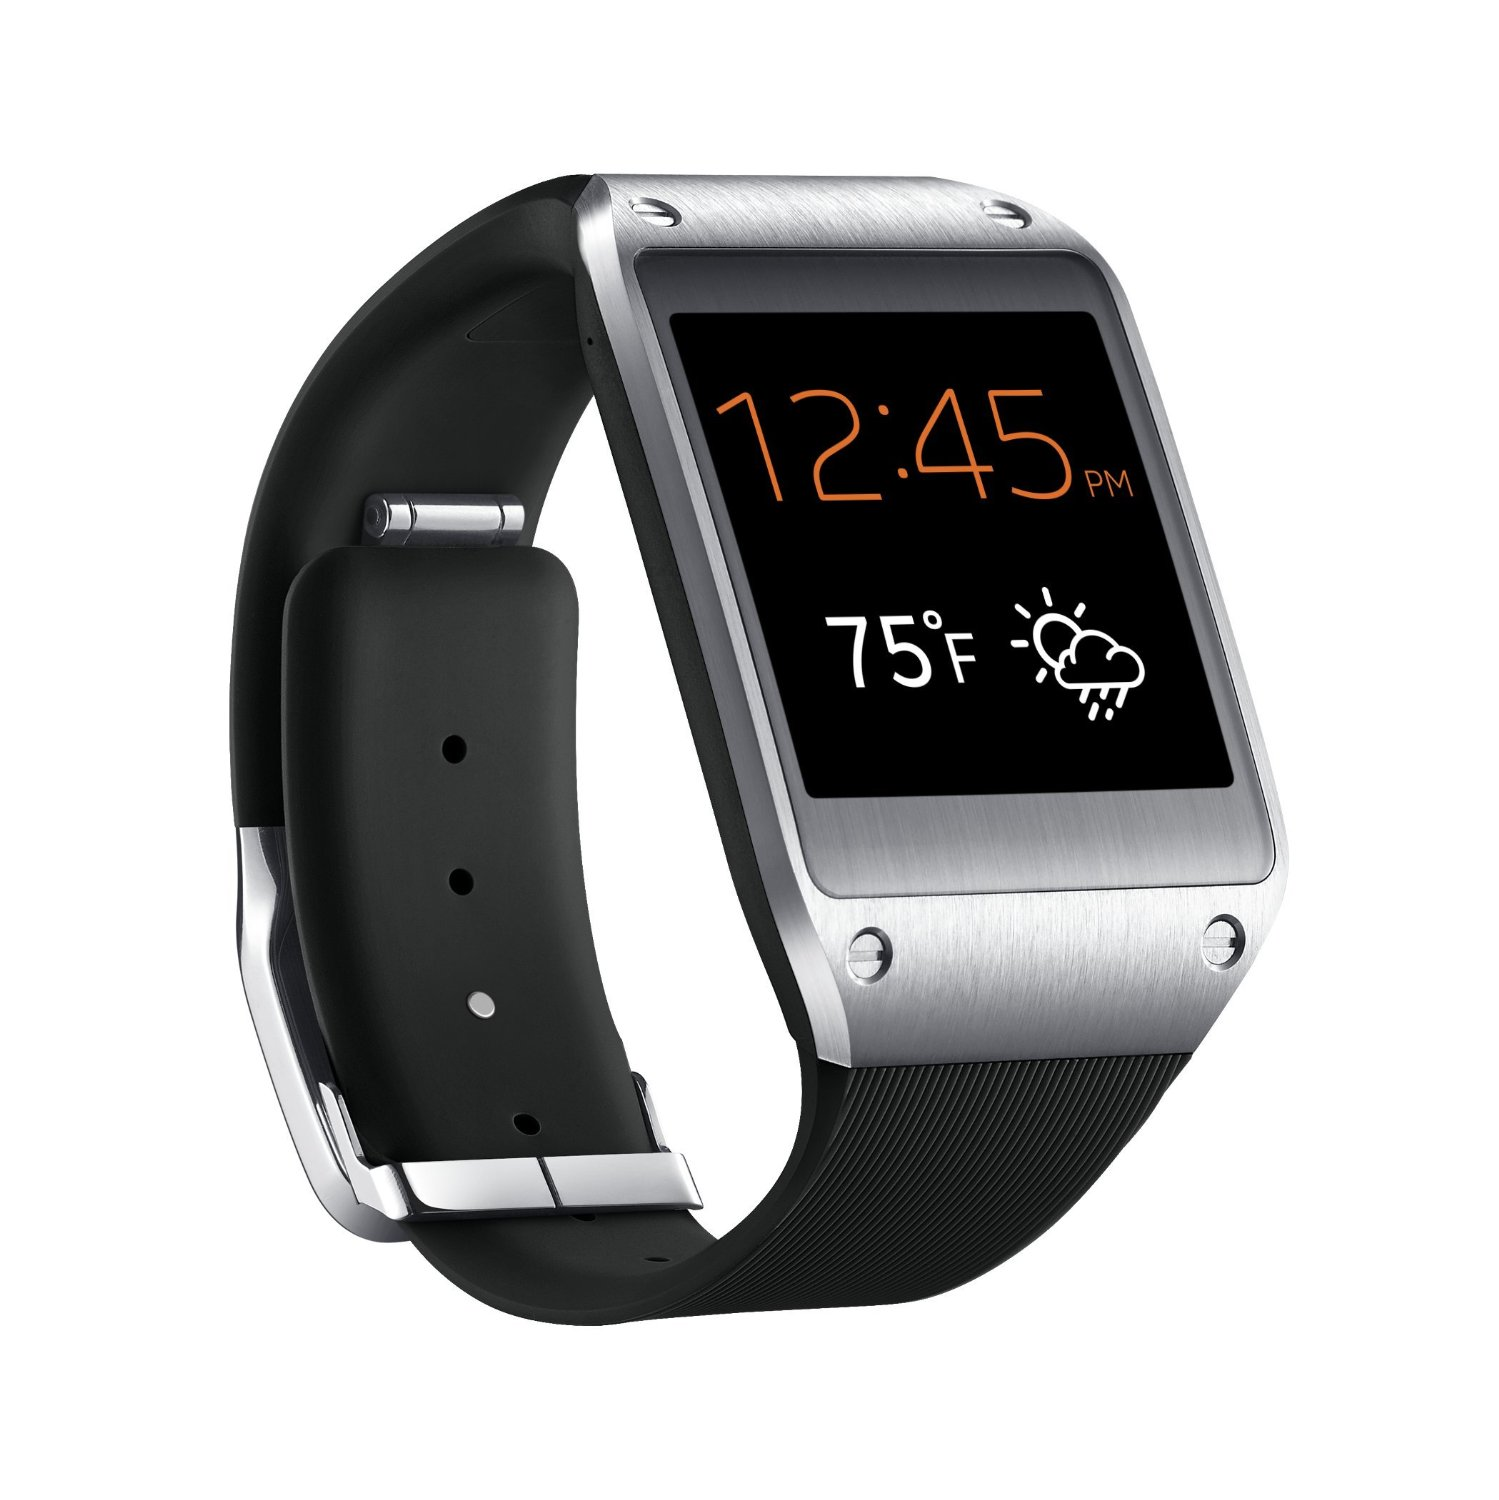 Samsung Galaxy Gear Smartwatch « For Men Gifts For Men Gifts